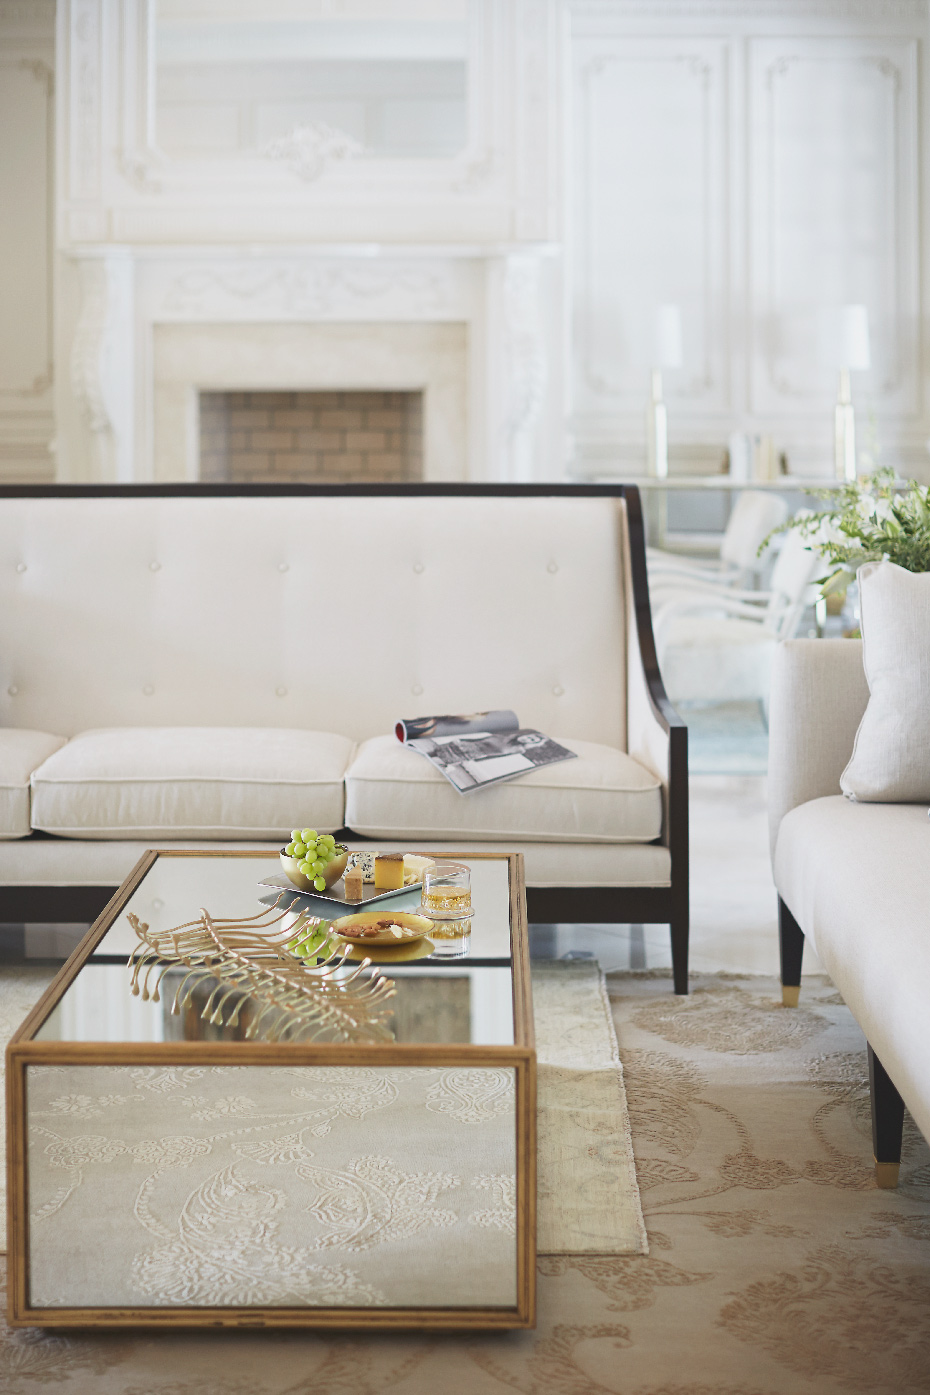 Stacey Van Berkel Photography I Elegant white on white interior I Parisian Apartment I Bernhardt Furniture